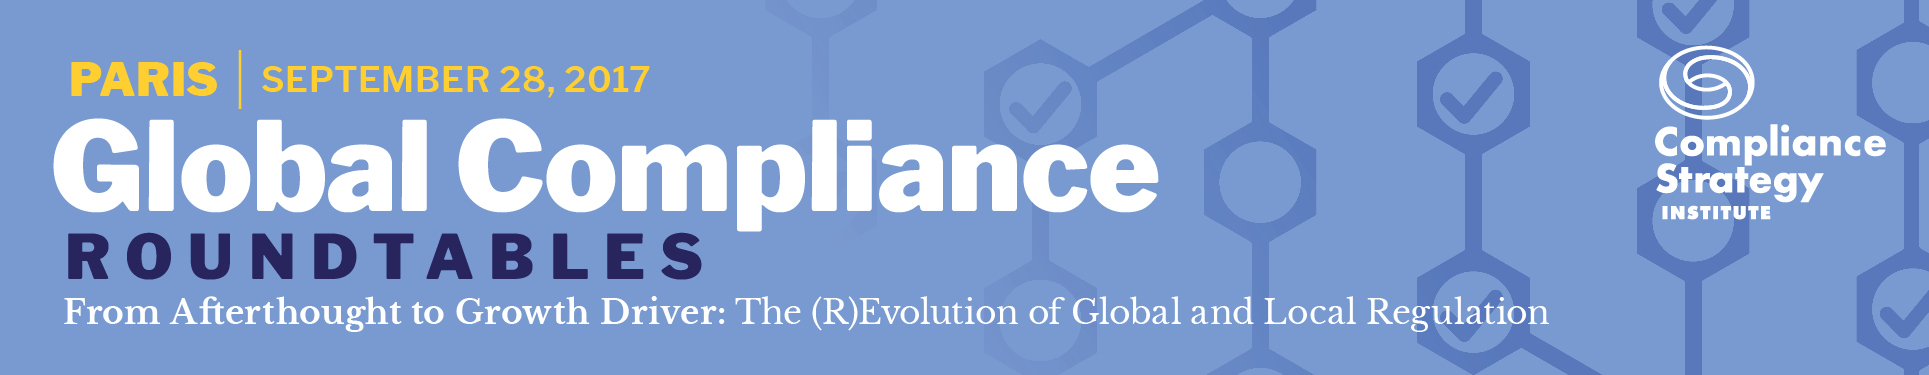 Global Compliance Roundtable, Paris